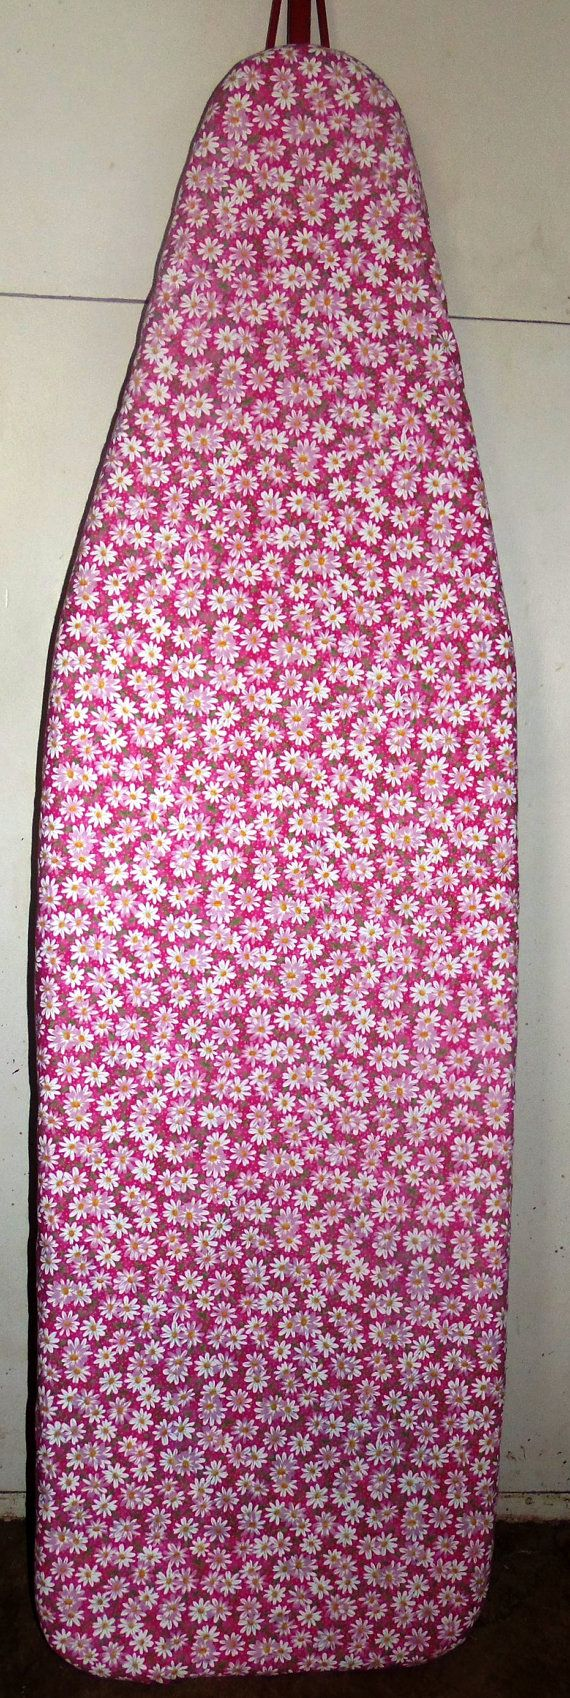 Daisies on Pink Farmhouse Ironing board cover by Farmhouseclassic